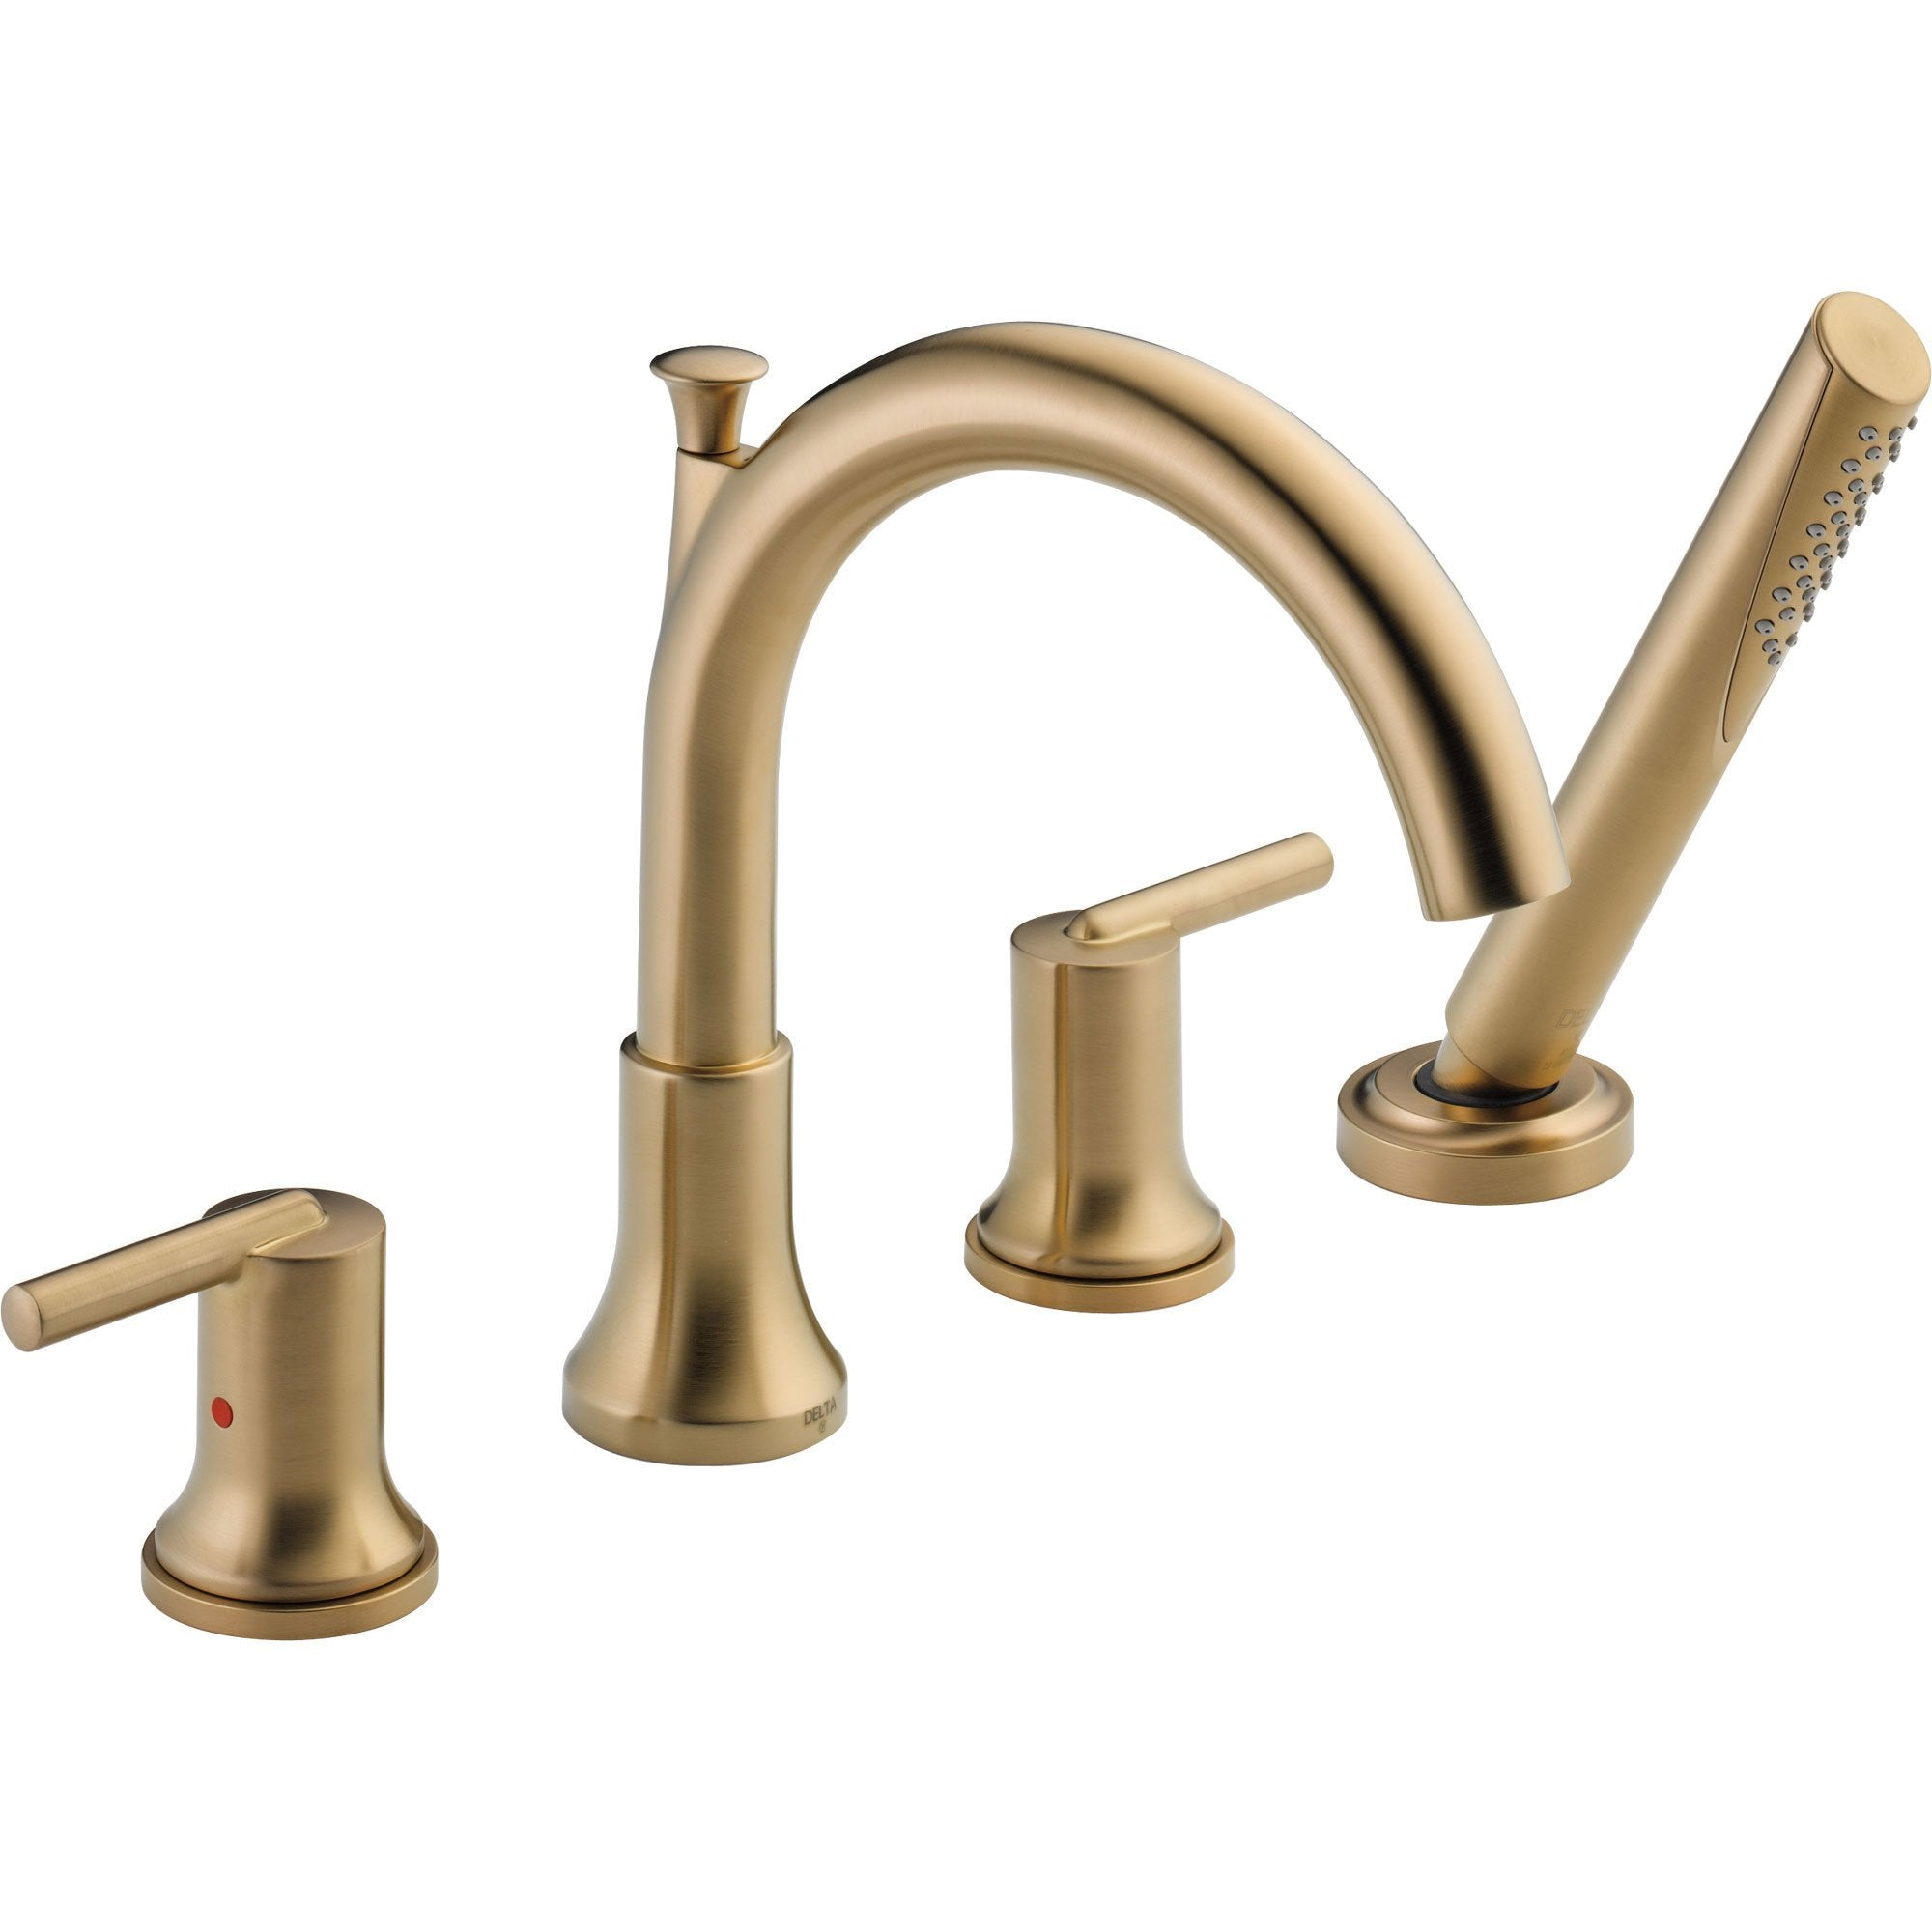 Delta Trinsic Champagne Bronze Roman Tub Faucet with Handshower Trim Kit 590144